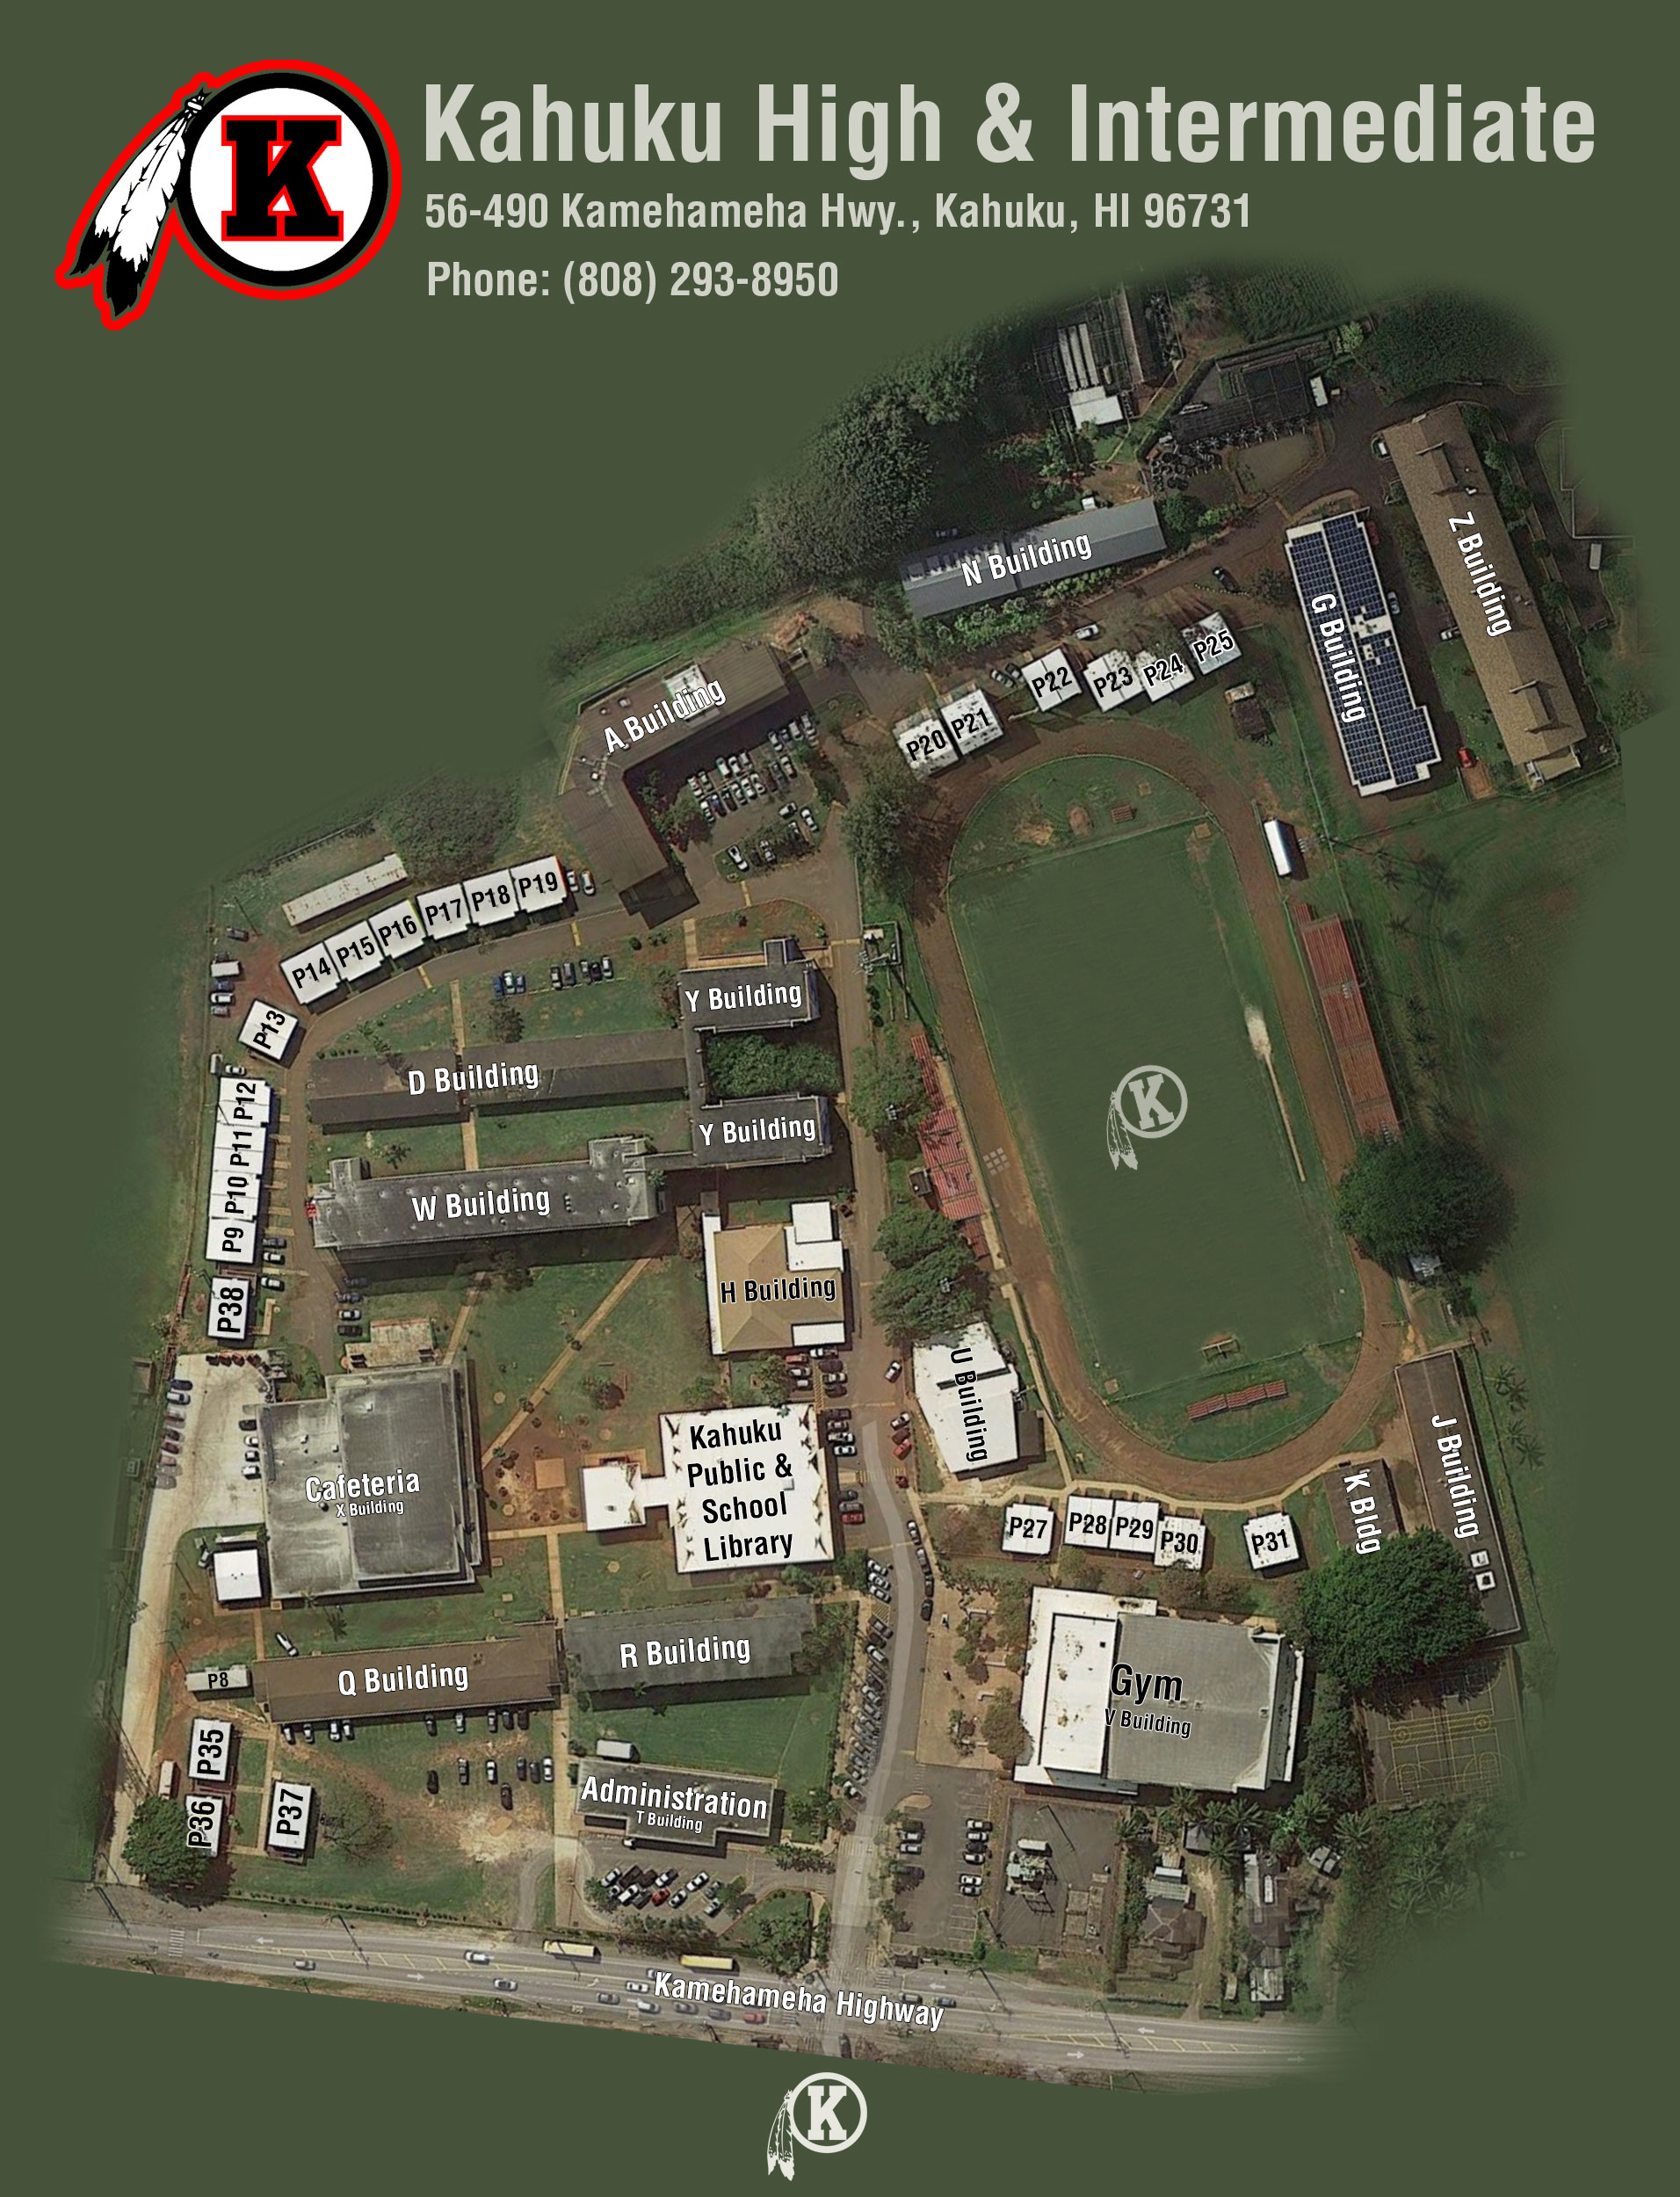 Honolulu Community College Campus Map.Kahuku High And Intermediate School